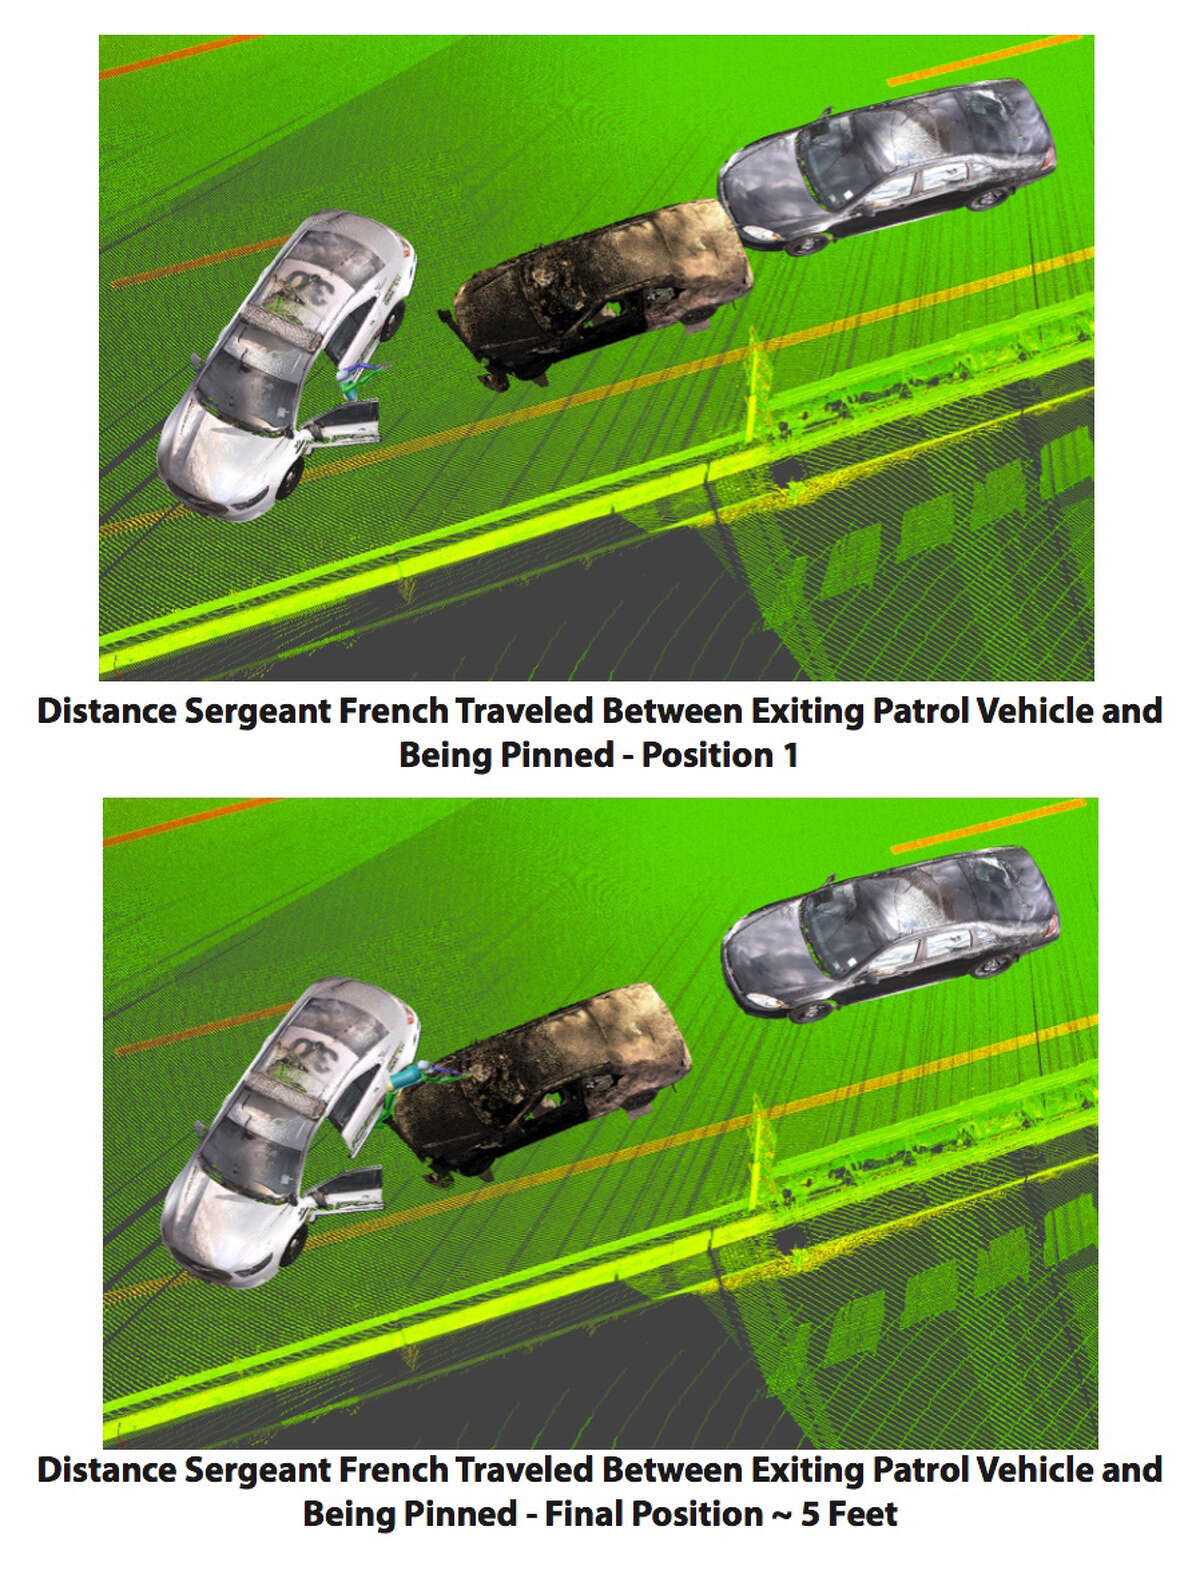 One graphic showing distance Sgt. Randall French traveled between exiting patrol vehicle and being pinned in April 2016 from Office of Attorney General's report on the investigation into the death of Edson Thevenin.